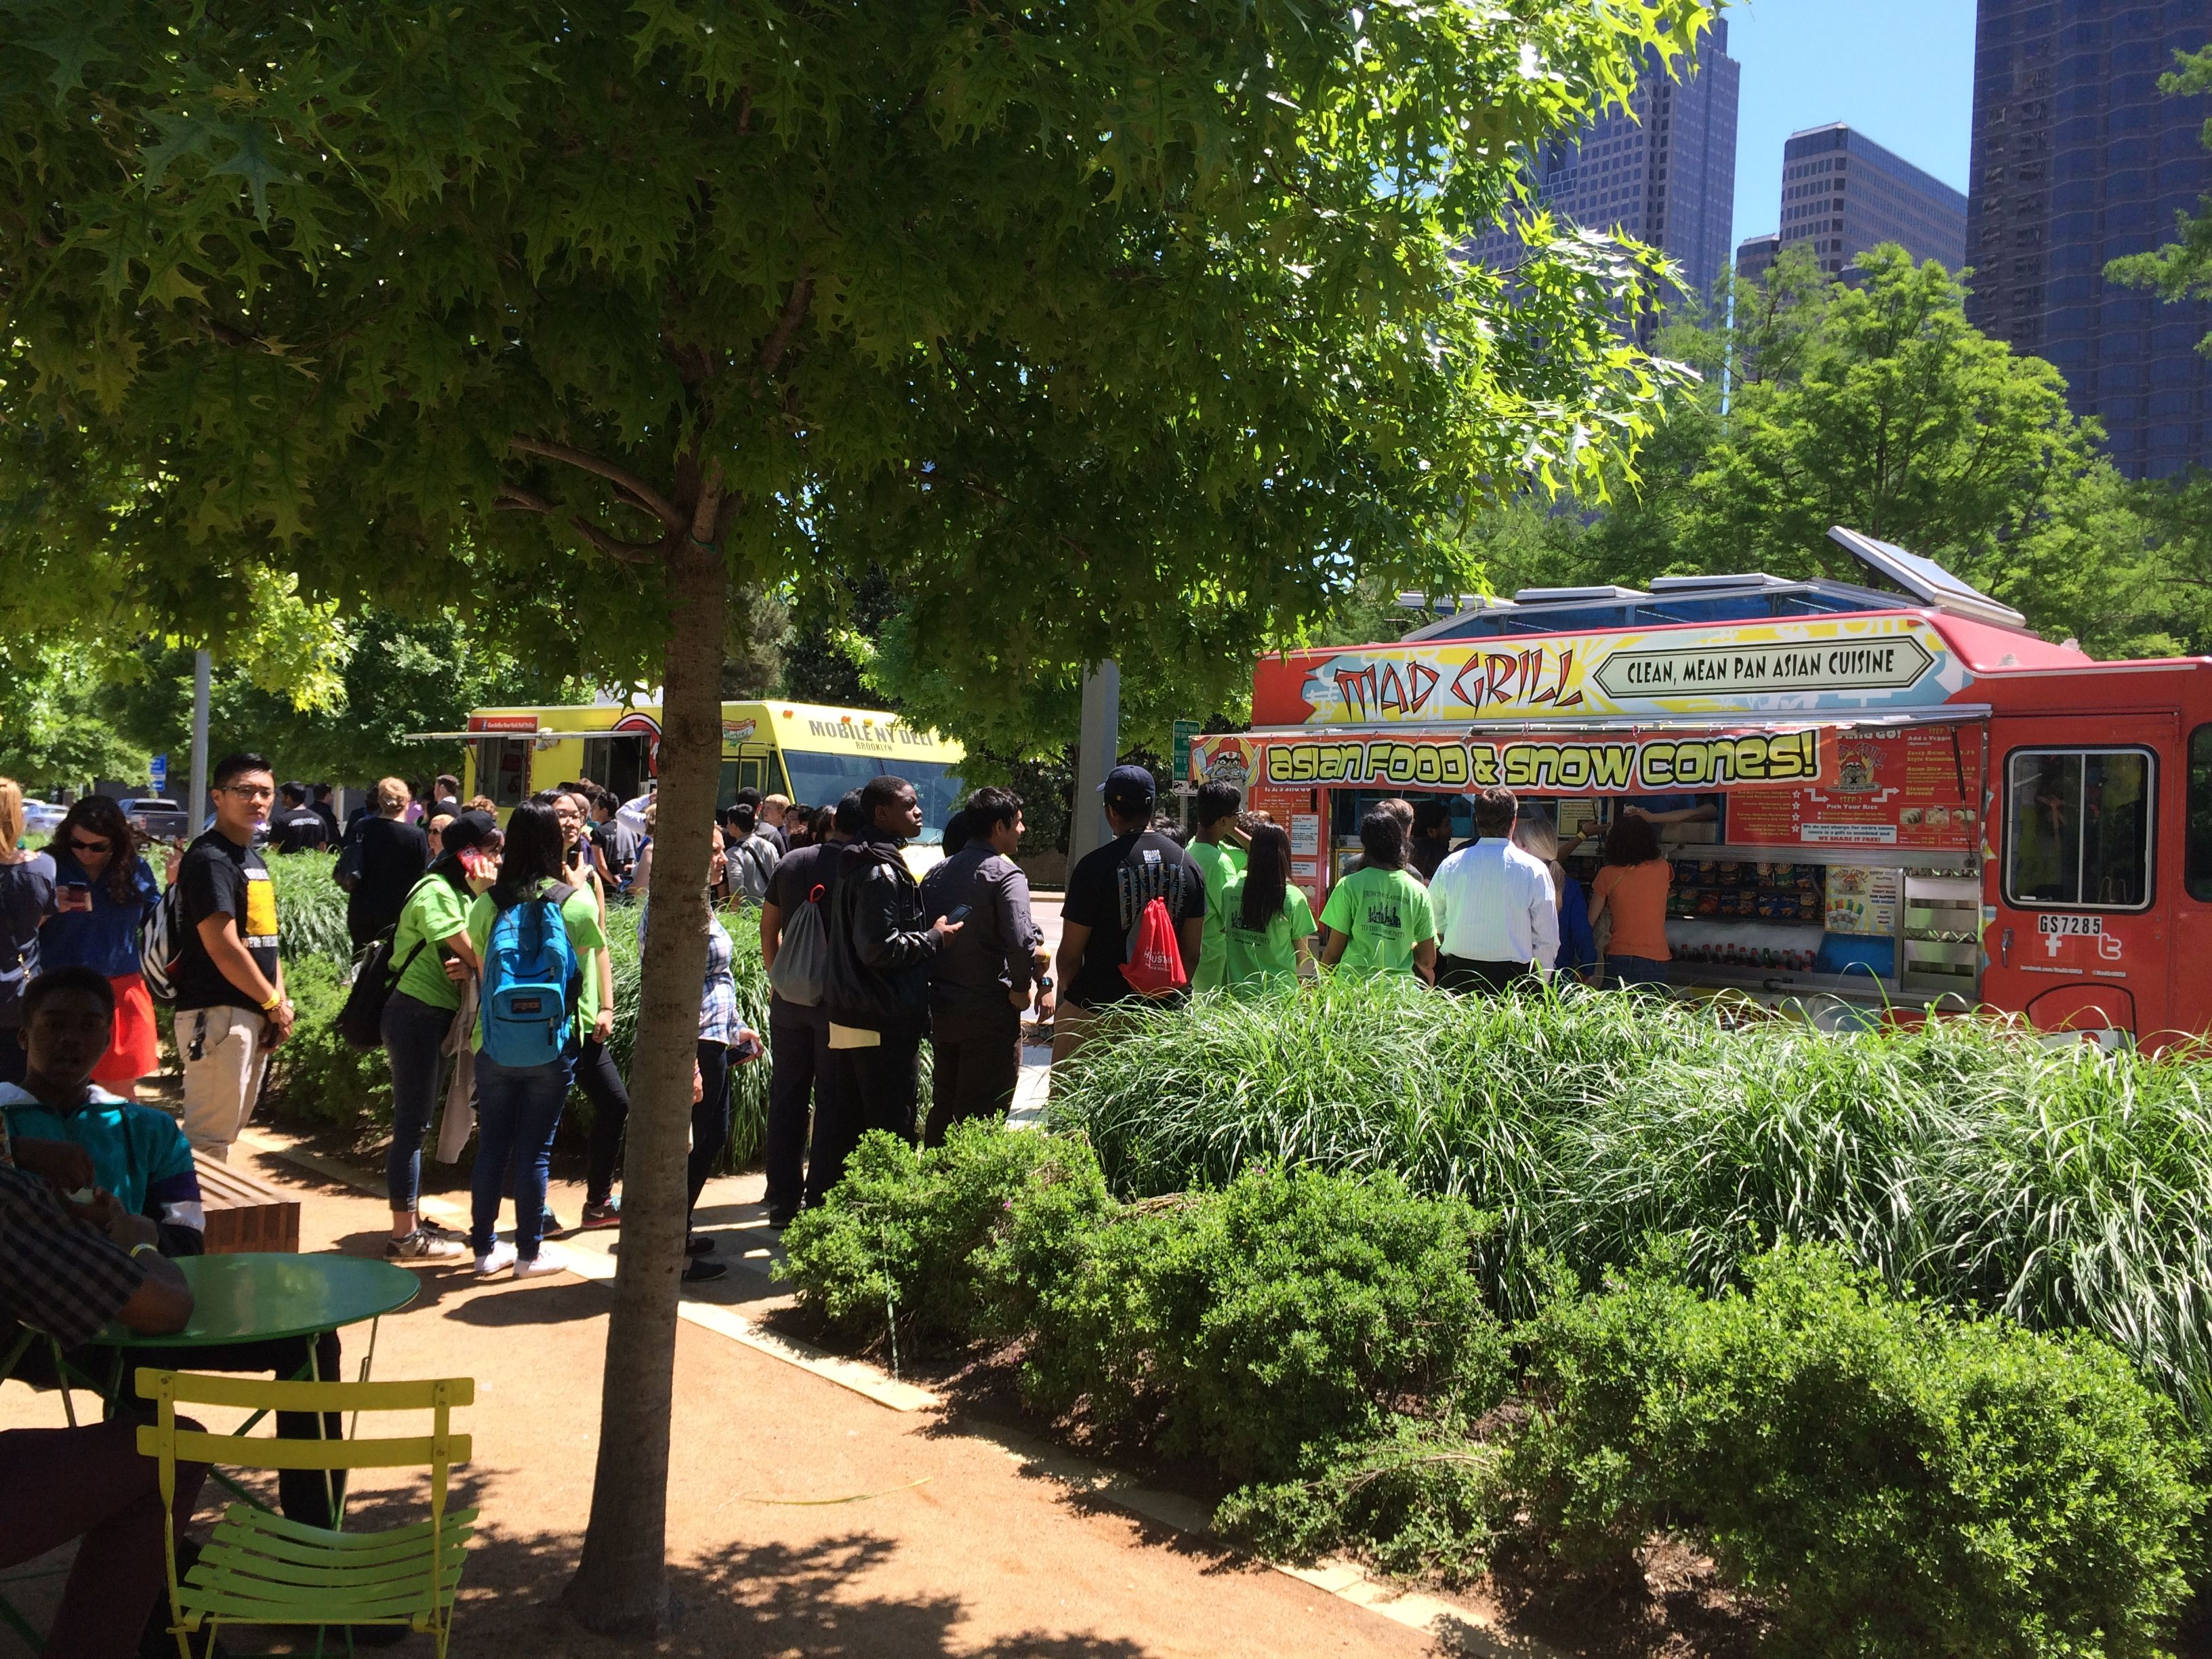 Food truck roundup at klyde warren park with images